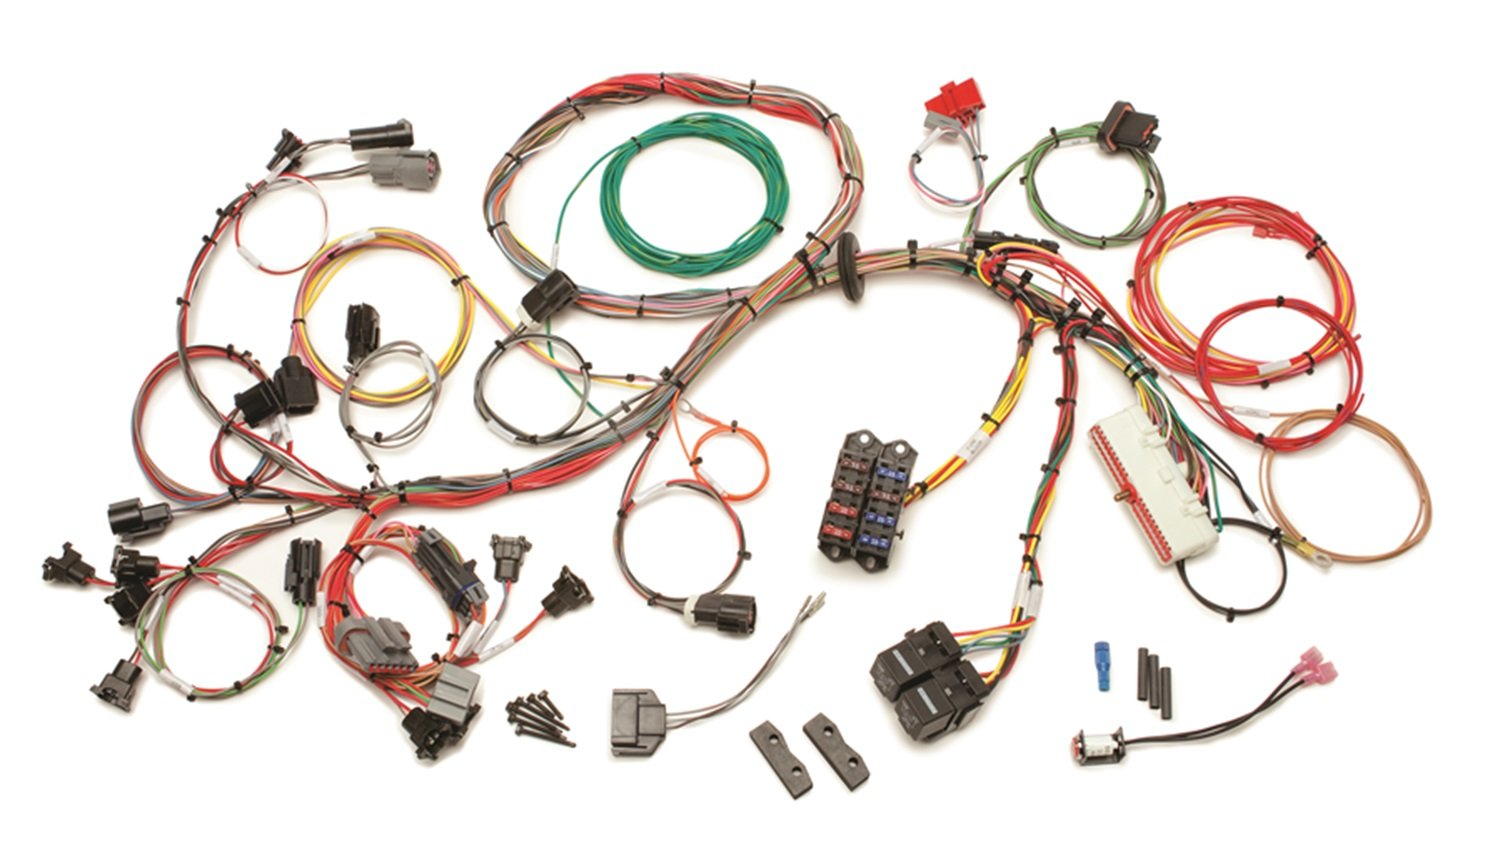 71UX1IBfleL._SL1500_ amazon com painless 60510 5 0l wiring harness automotive 1990 Mustang Wiring Harness at bakdesigns.co